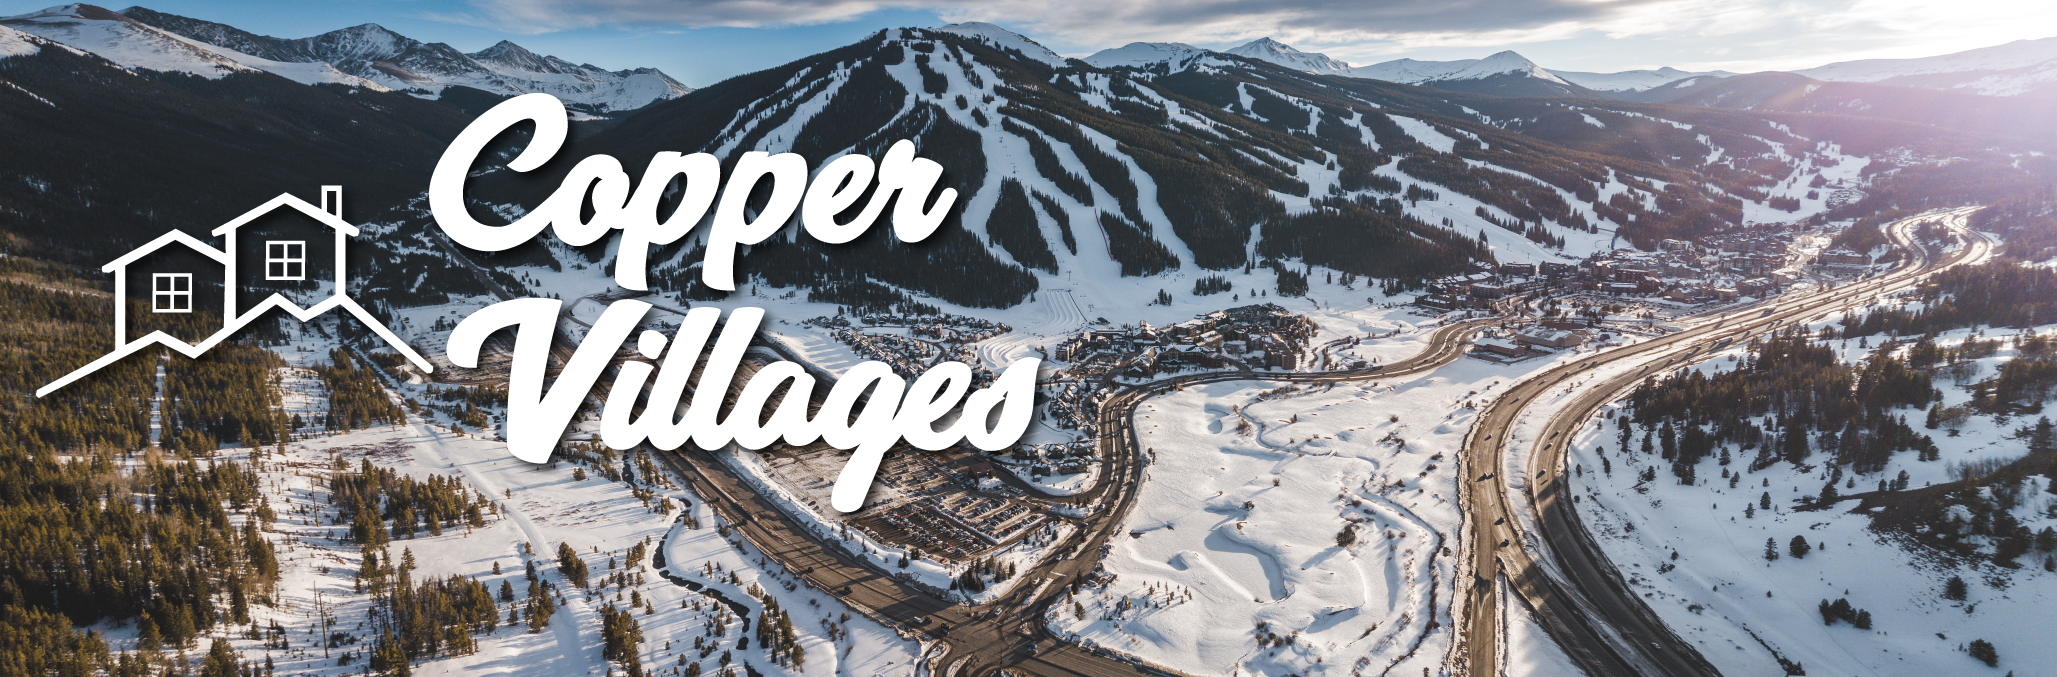 copper mountain villages